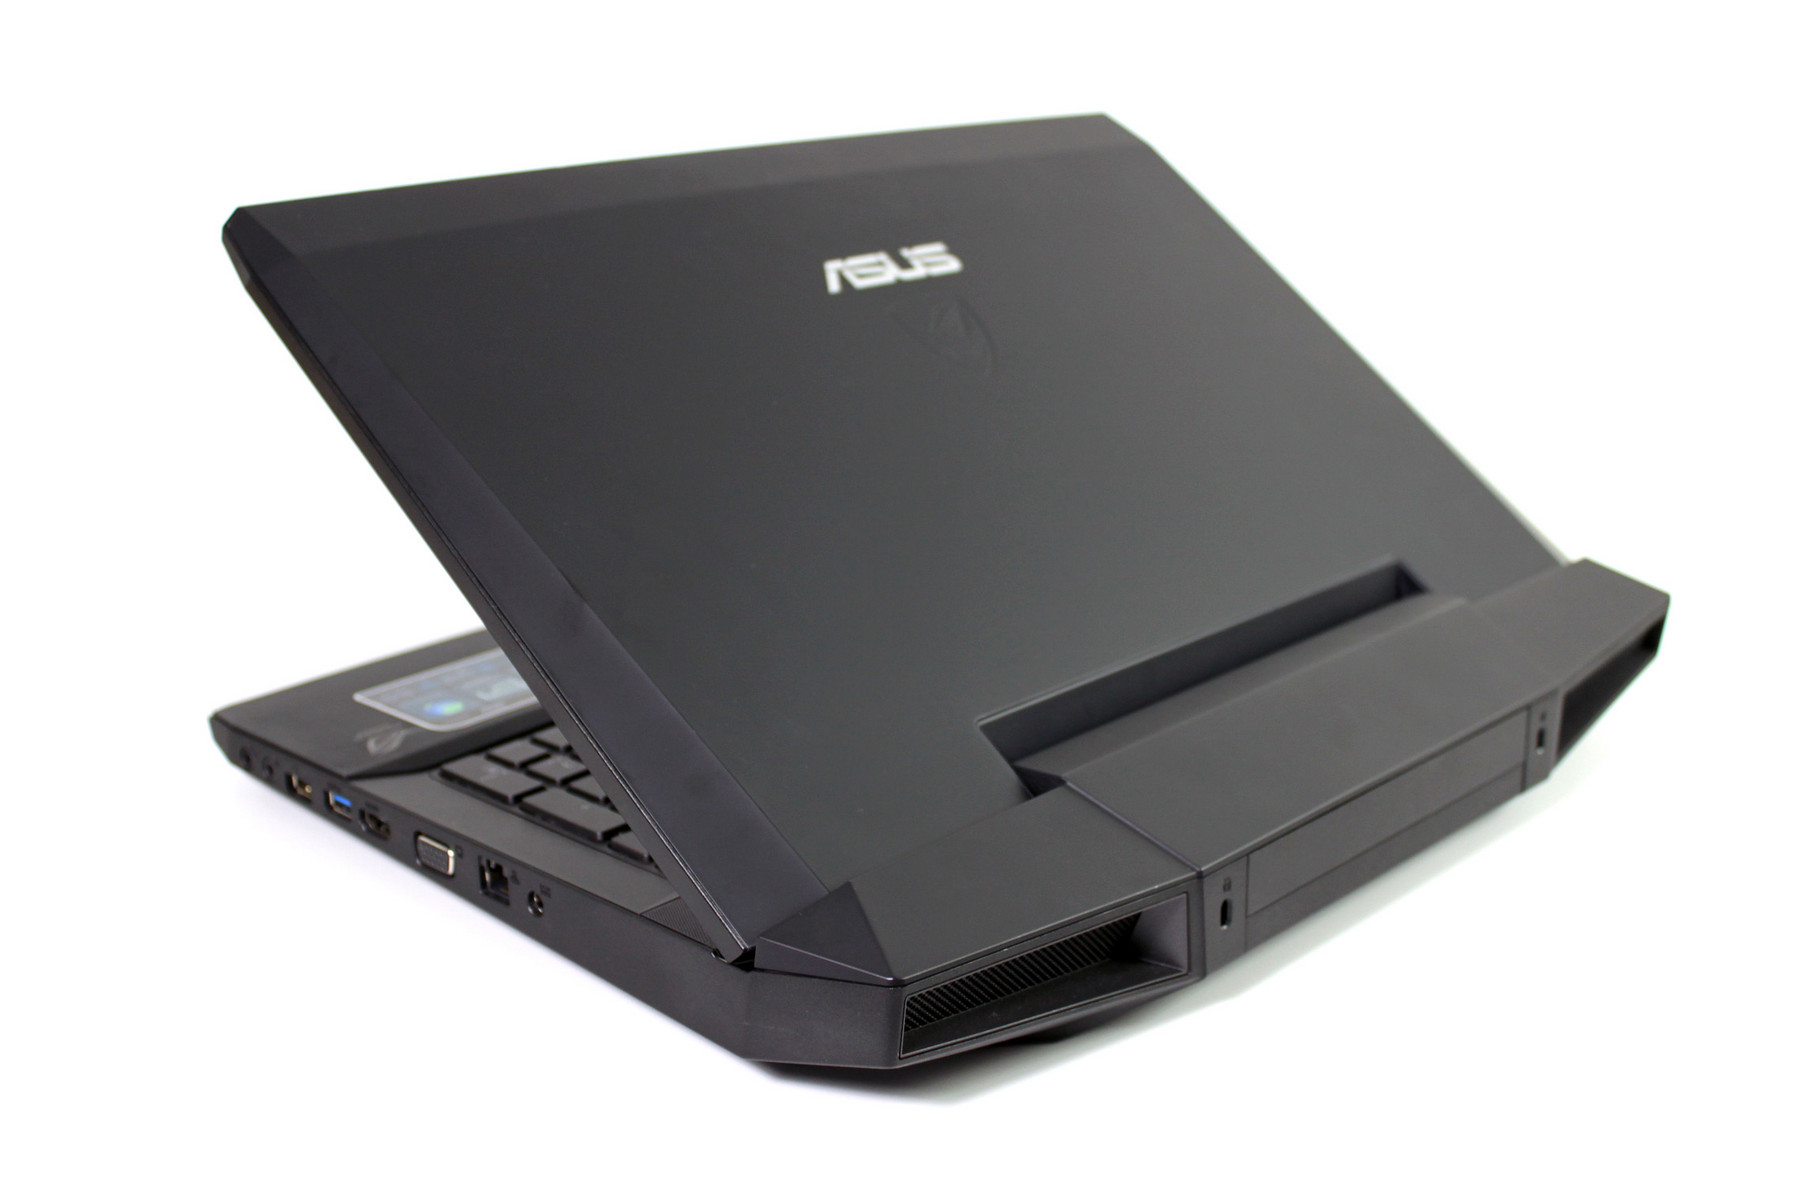 ASUS G53SW INTEL RAPID STORAGE DRIVER PC